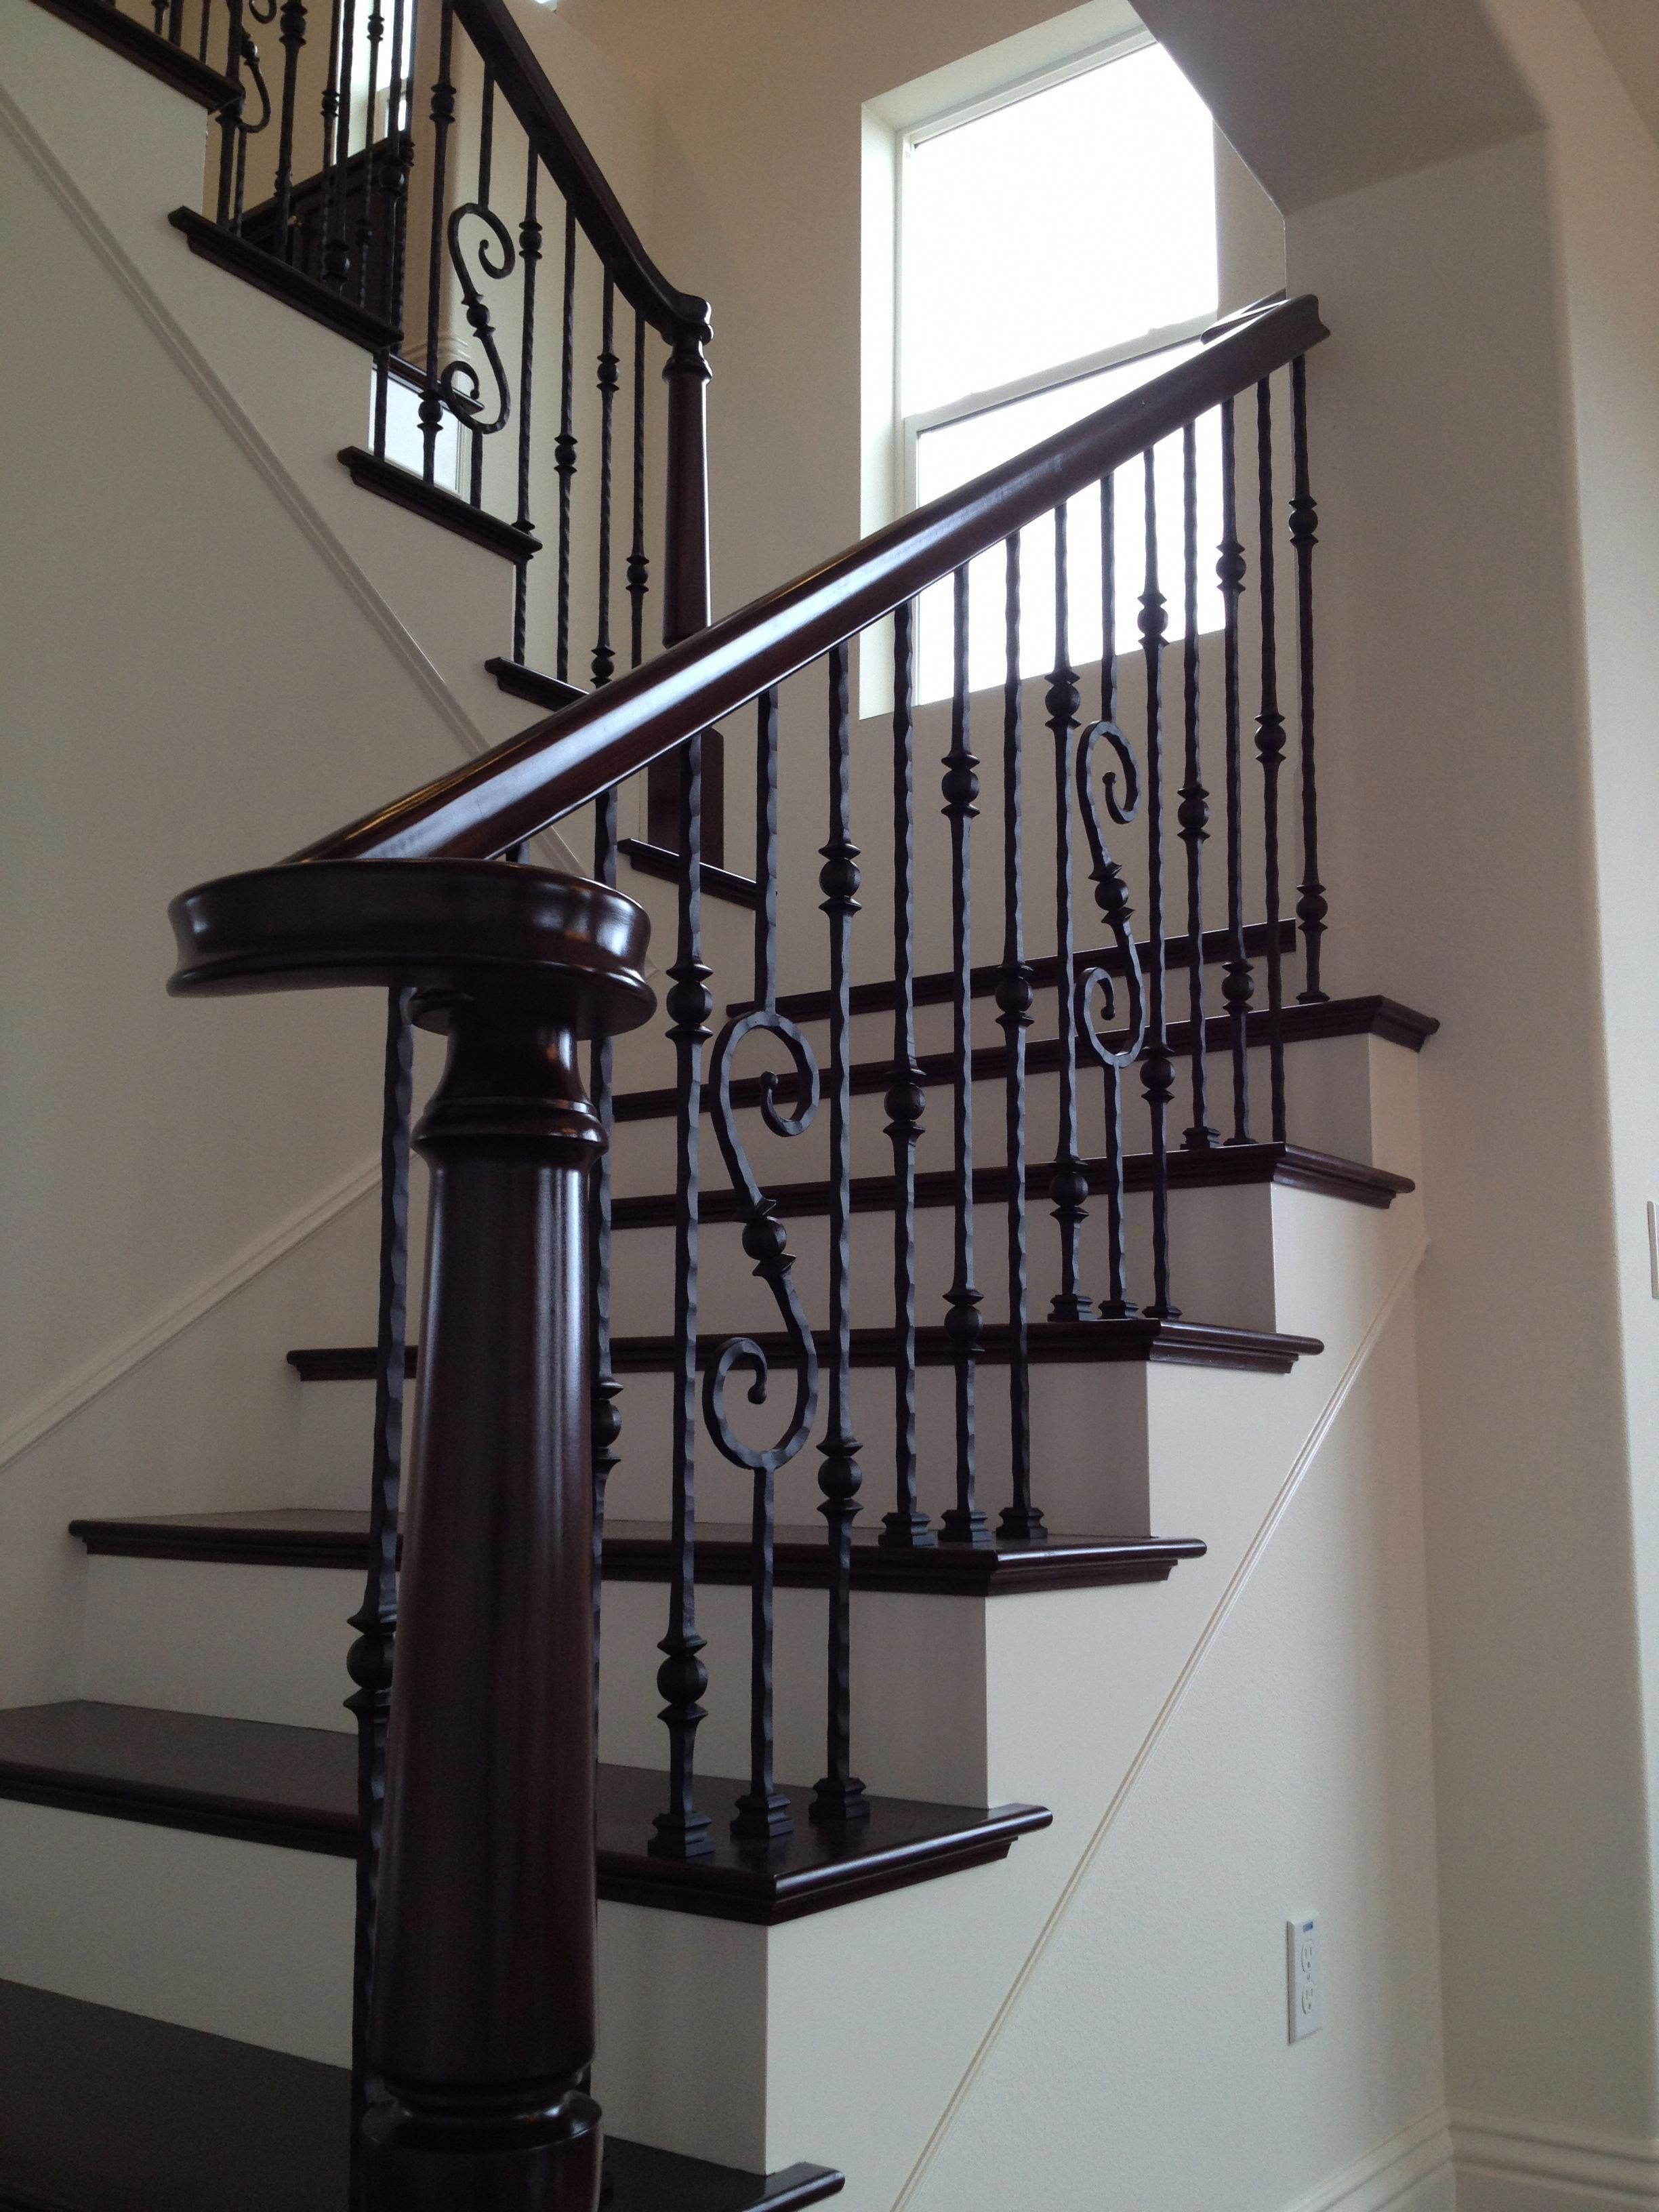 Interior Shutters For Sale Product Id 1186825610 | Stair Banisters For Sale